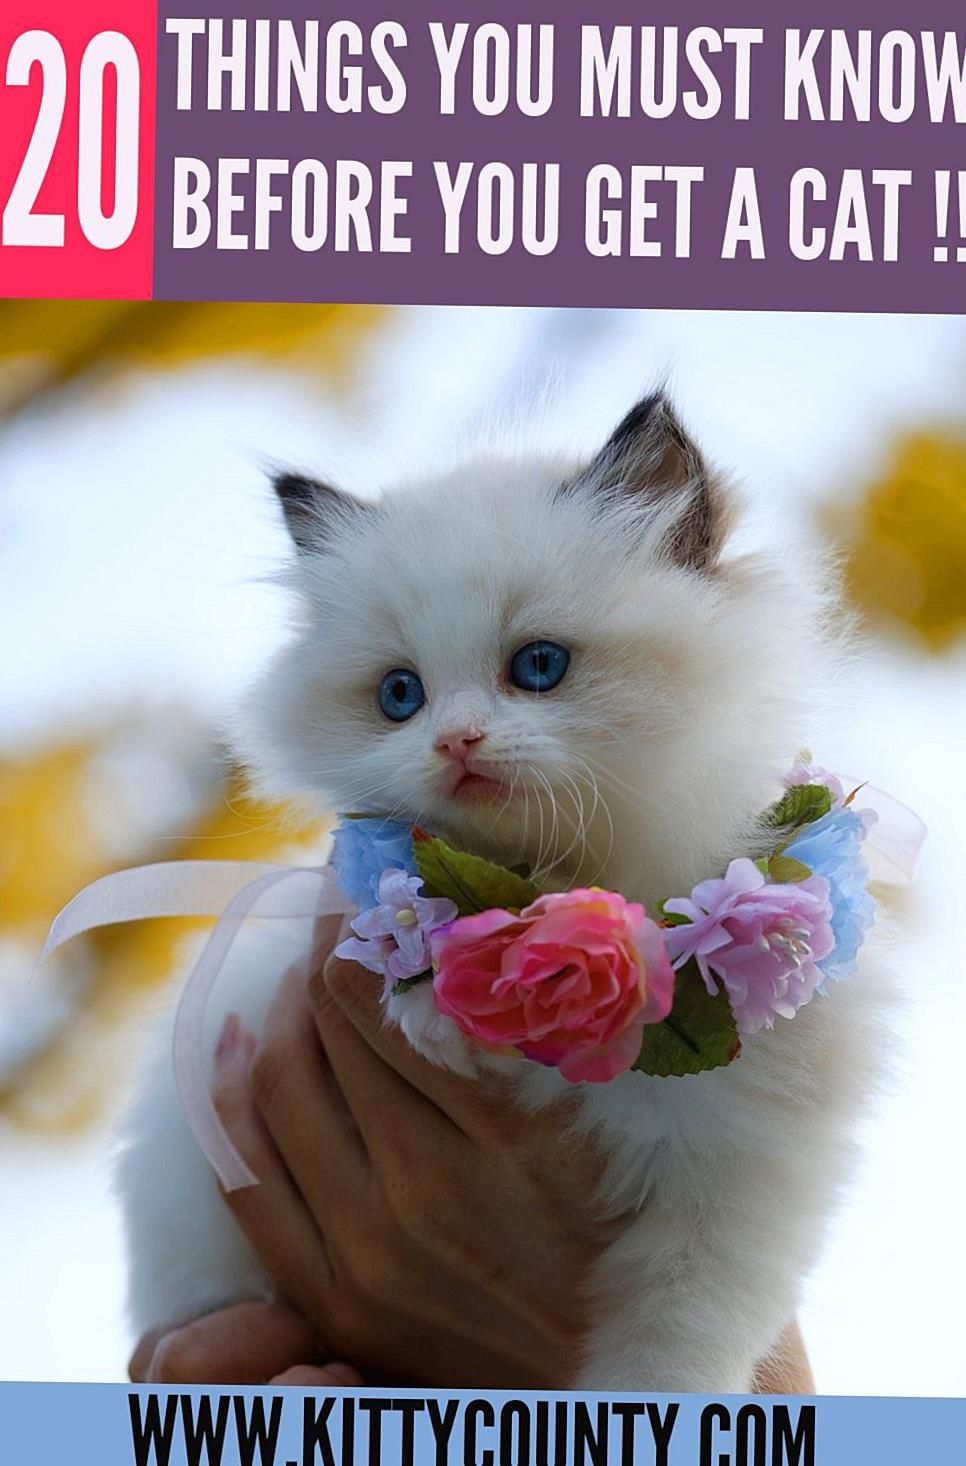 Bringing A Cuddly Cute And Purring Bundle Of Joy Is Exciting This Kitten Is The First One Or An Addition To The Paw Army You In 2020 Kitten Care Cat